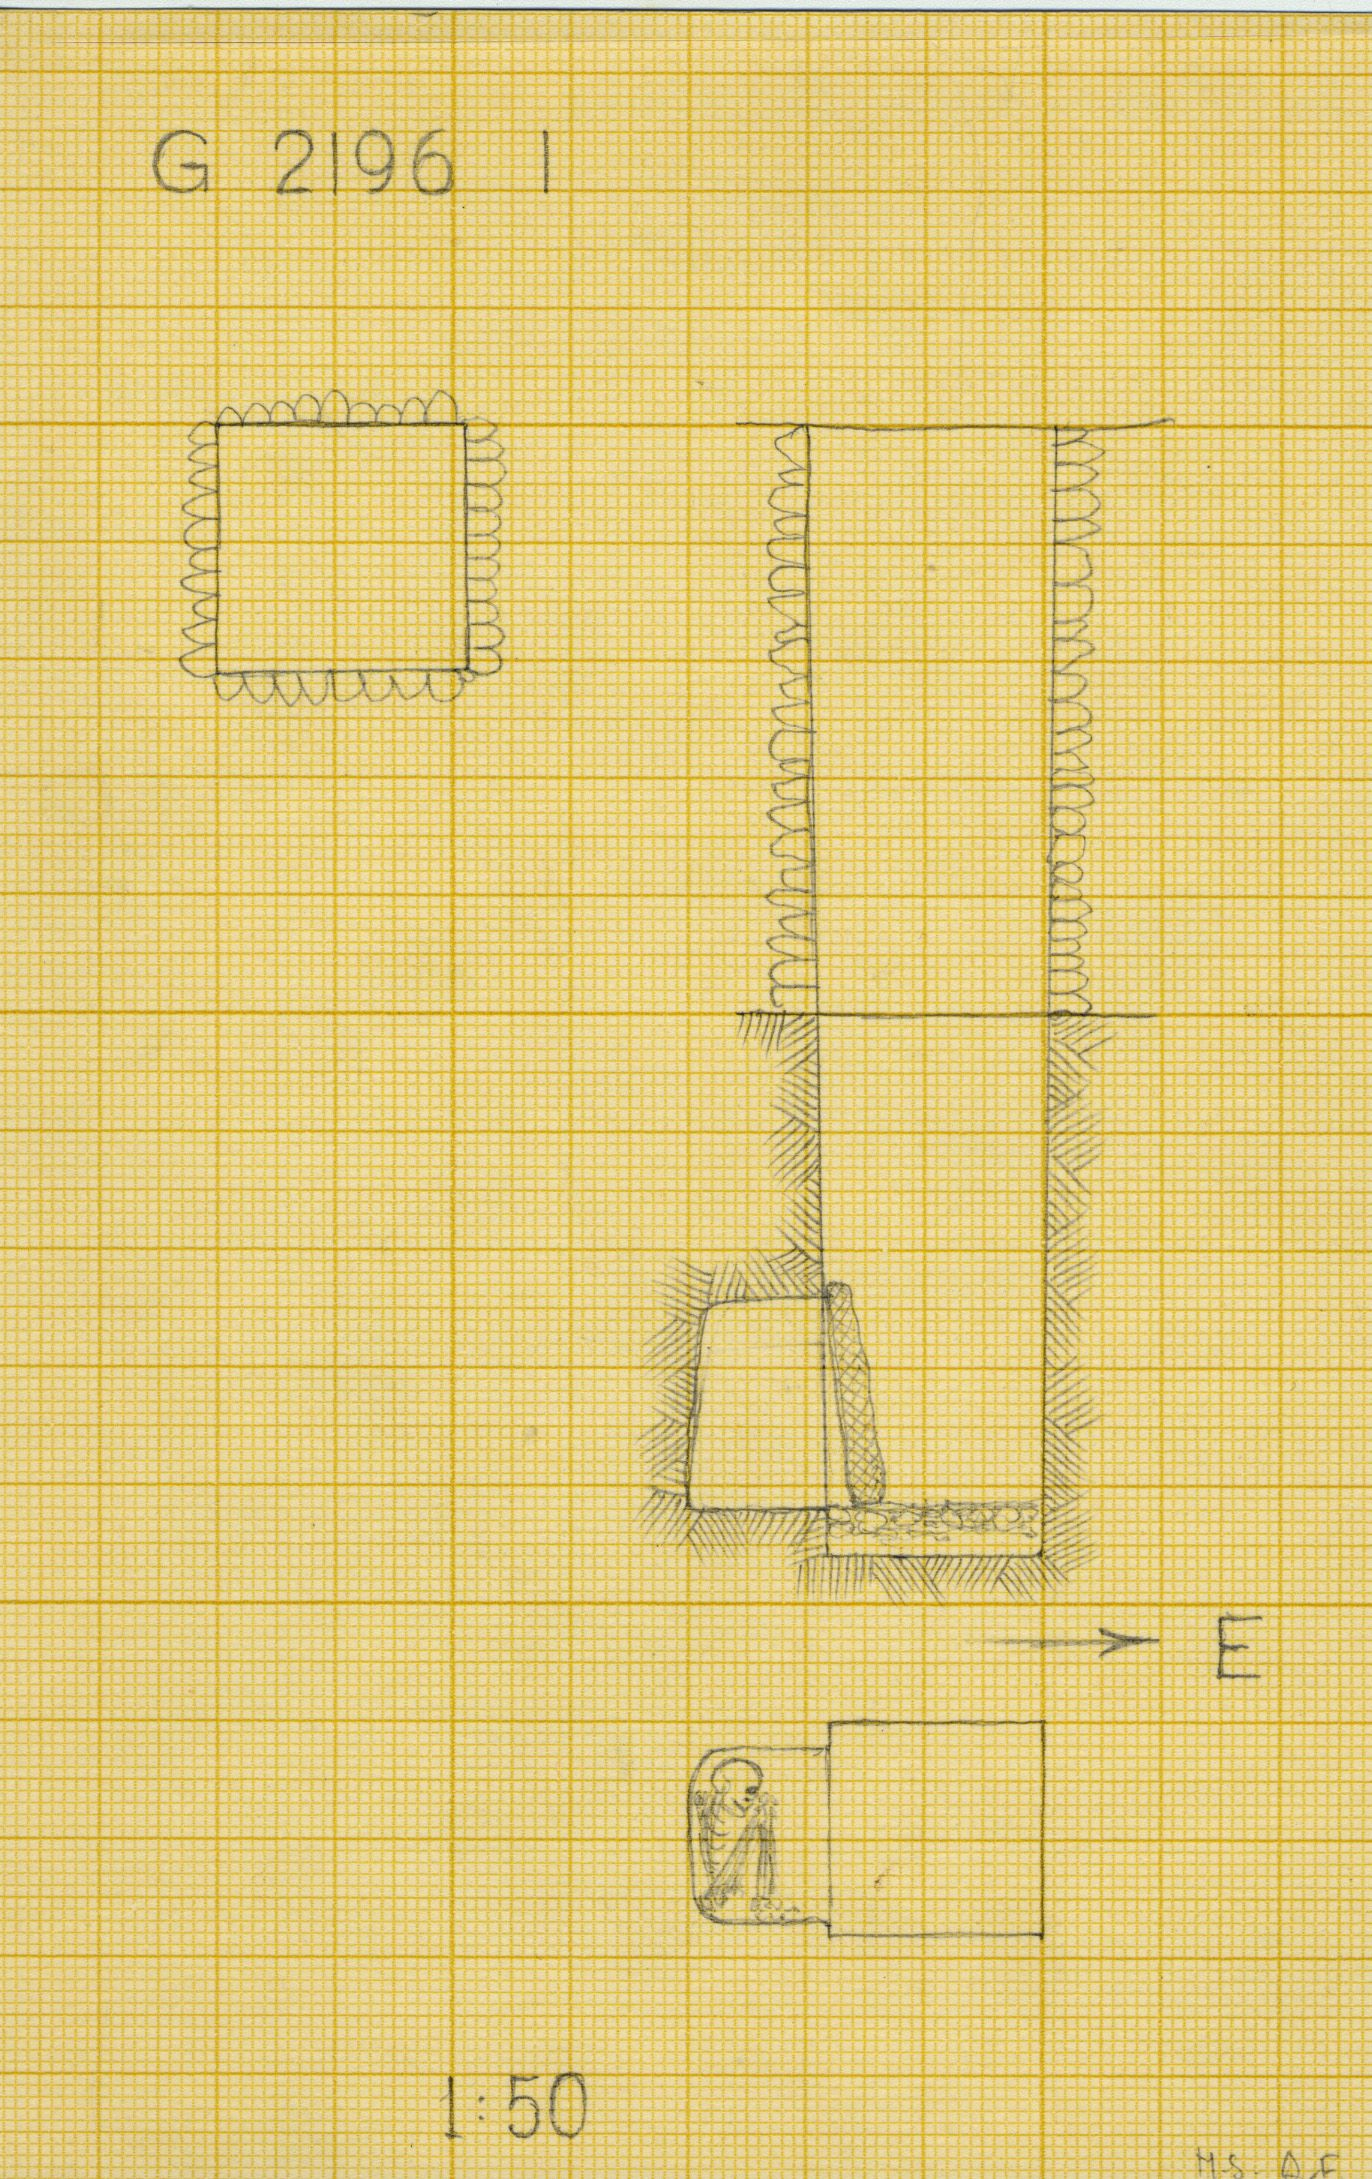 Maps and plans: G 2196, Shaft I